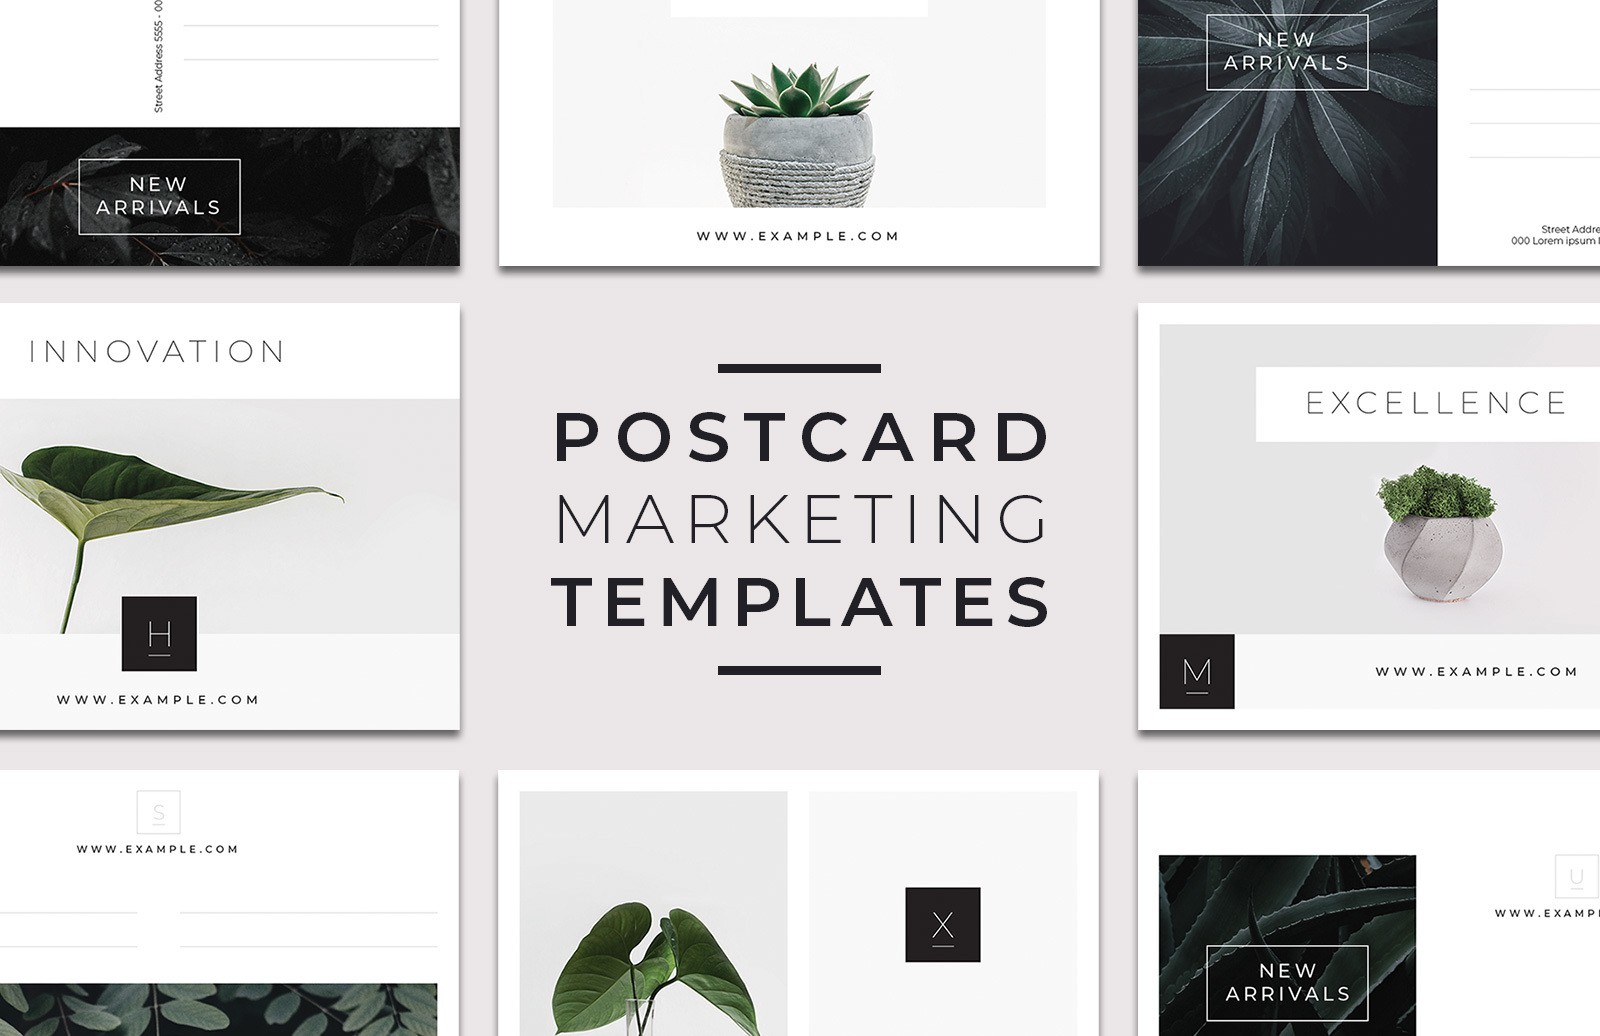 Postcard Marketing Templates Preview 1